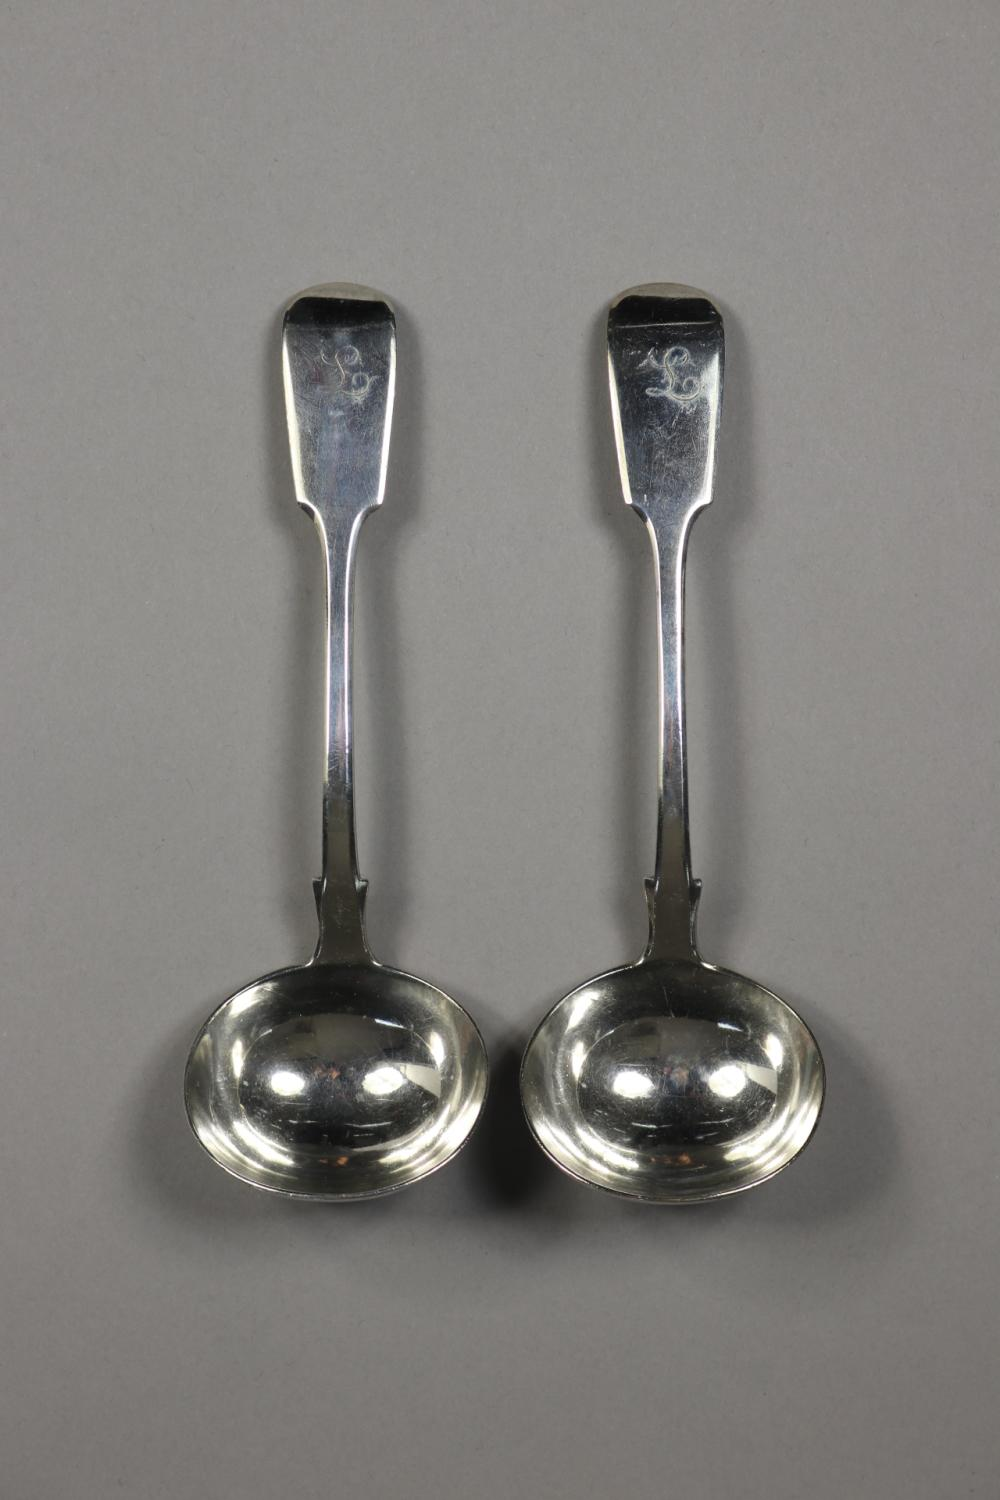 Pair of antique Victorian hallmarked sterling silver, fiddle pattern sauce ladles, monogrammed, London 1849, Chas. Lias, approx 135 grams (2)